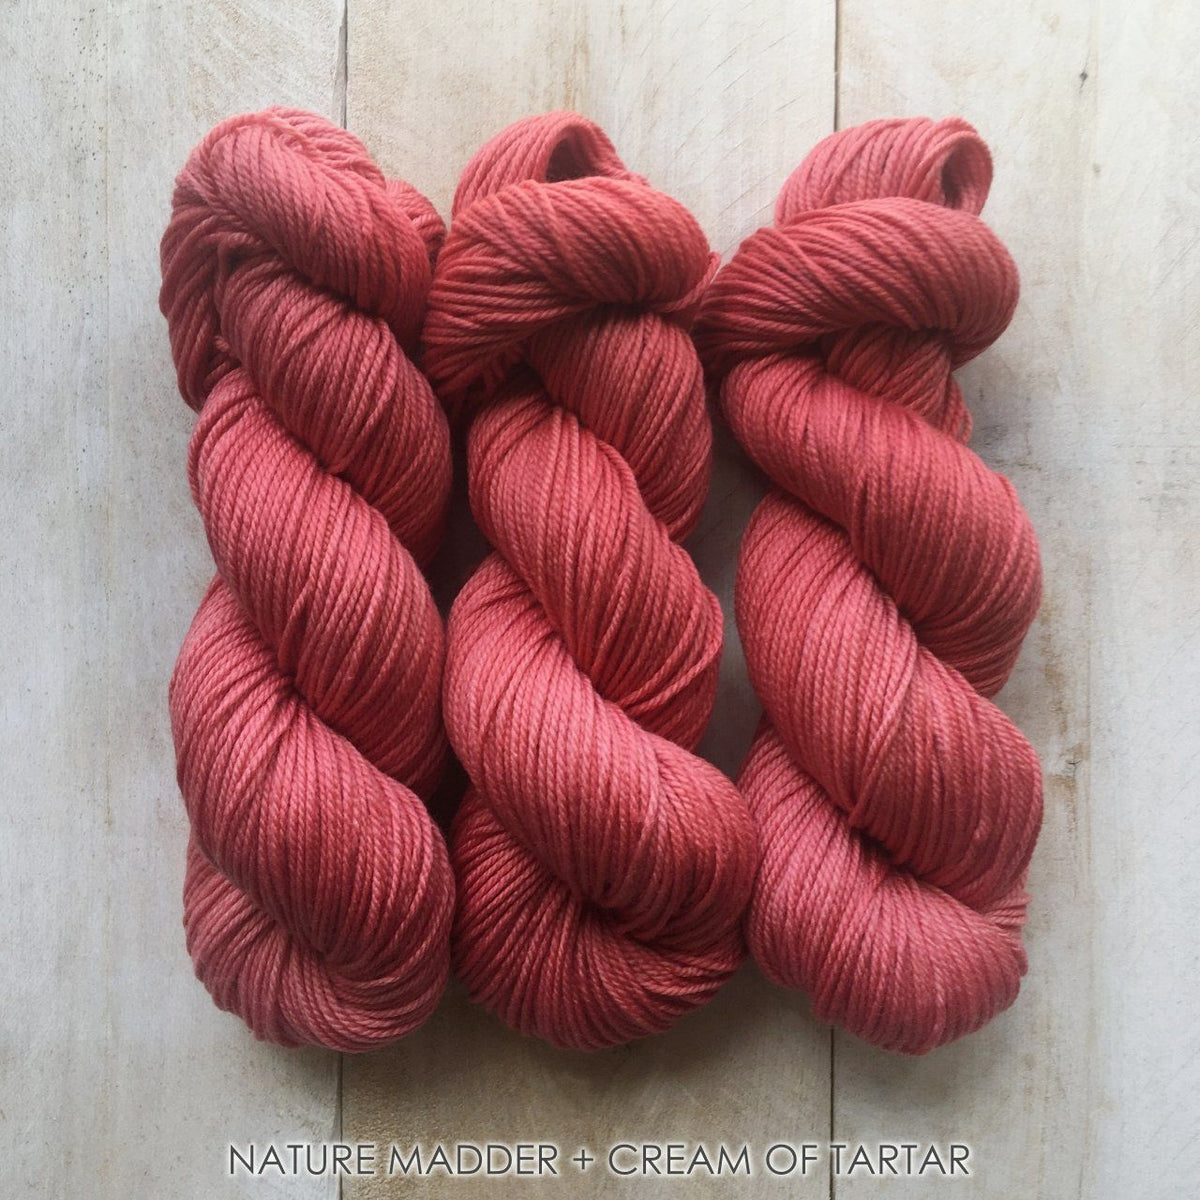 MADDER+CREAM OF TARTAR by Louise Robert Design | SUPER SOCK hand-dyed yarn, natural dyes